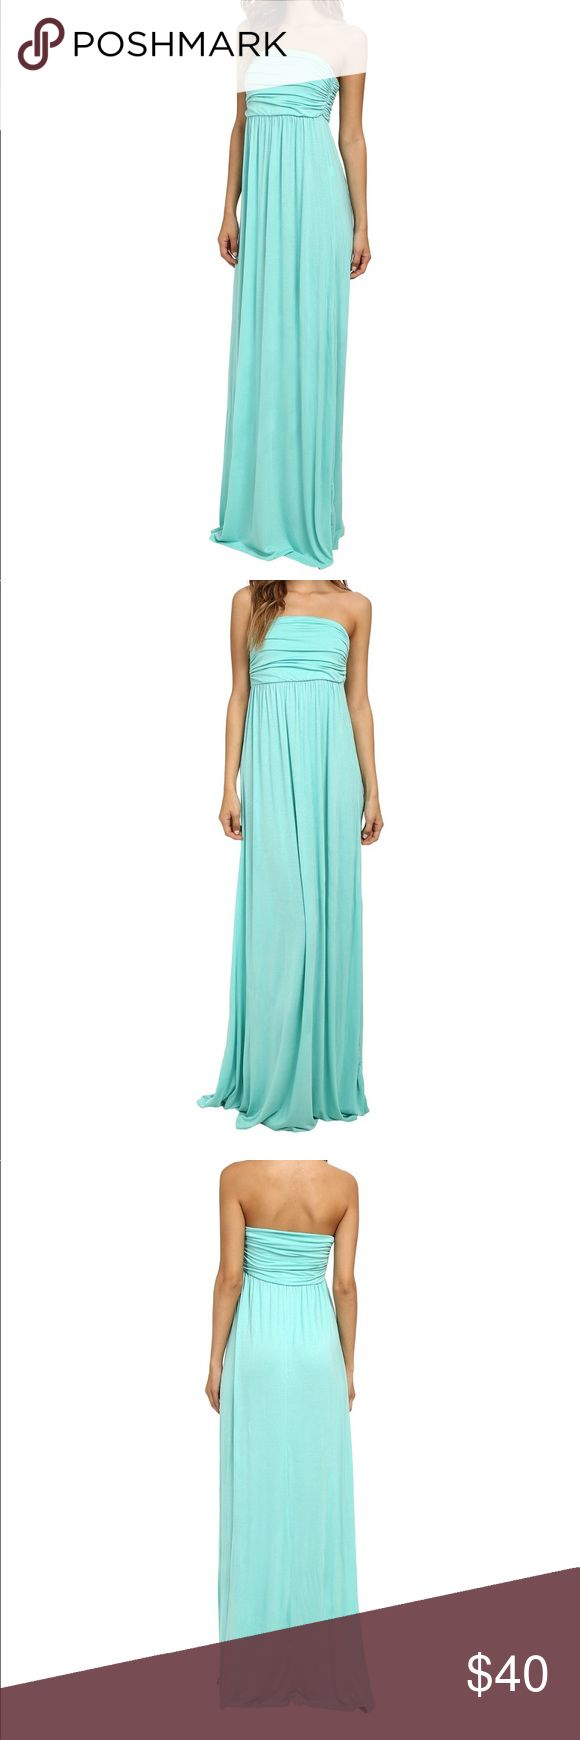 Gabriella Rocha Maxi Dress Mint Green Gabriella Rocha Maxi Dress. Dress is gently used. Size Small. There are silver streaks throughout Dress, they are not stains or deodorant. It's part of Dress coloring. I am selling a J Crew necklace that I originally bought to wear with dress but never did. Will bundle together for discounted price and shipping ☺️ gabriella rocha Dresses Maxi